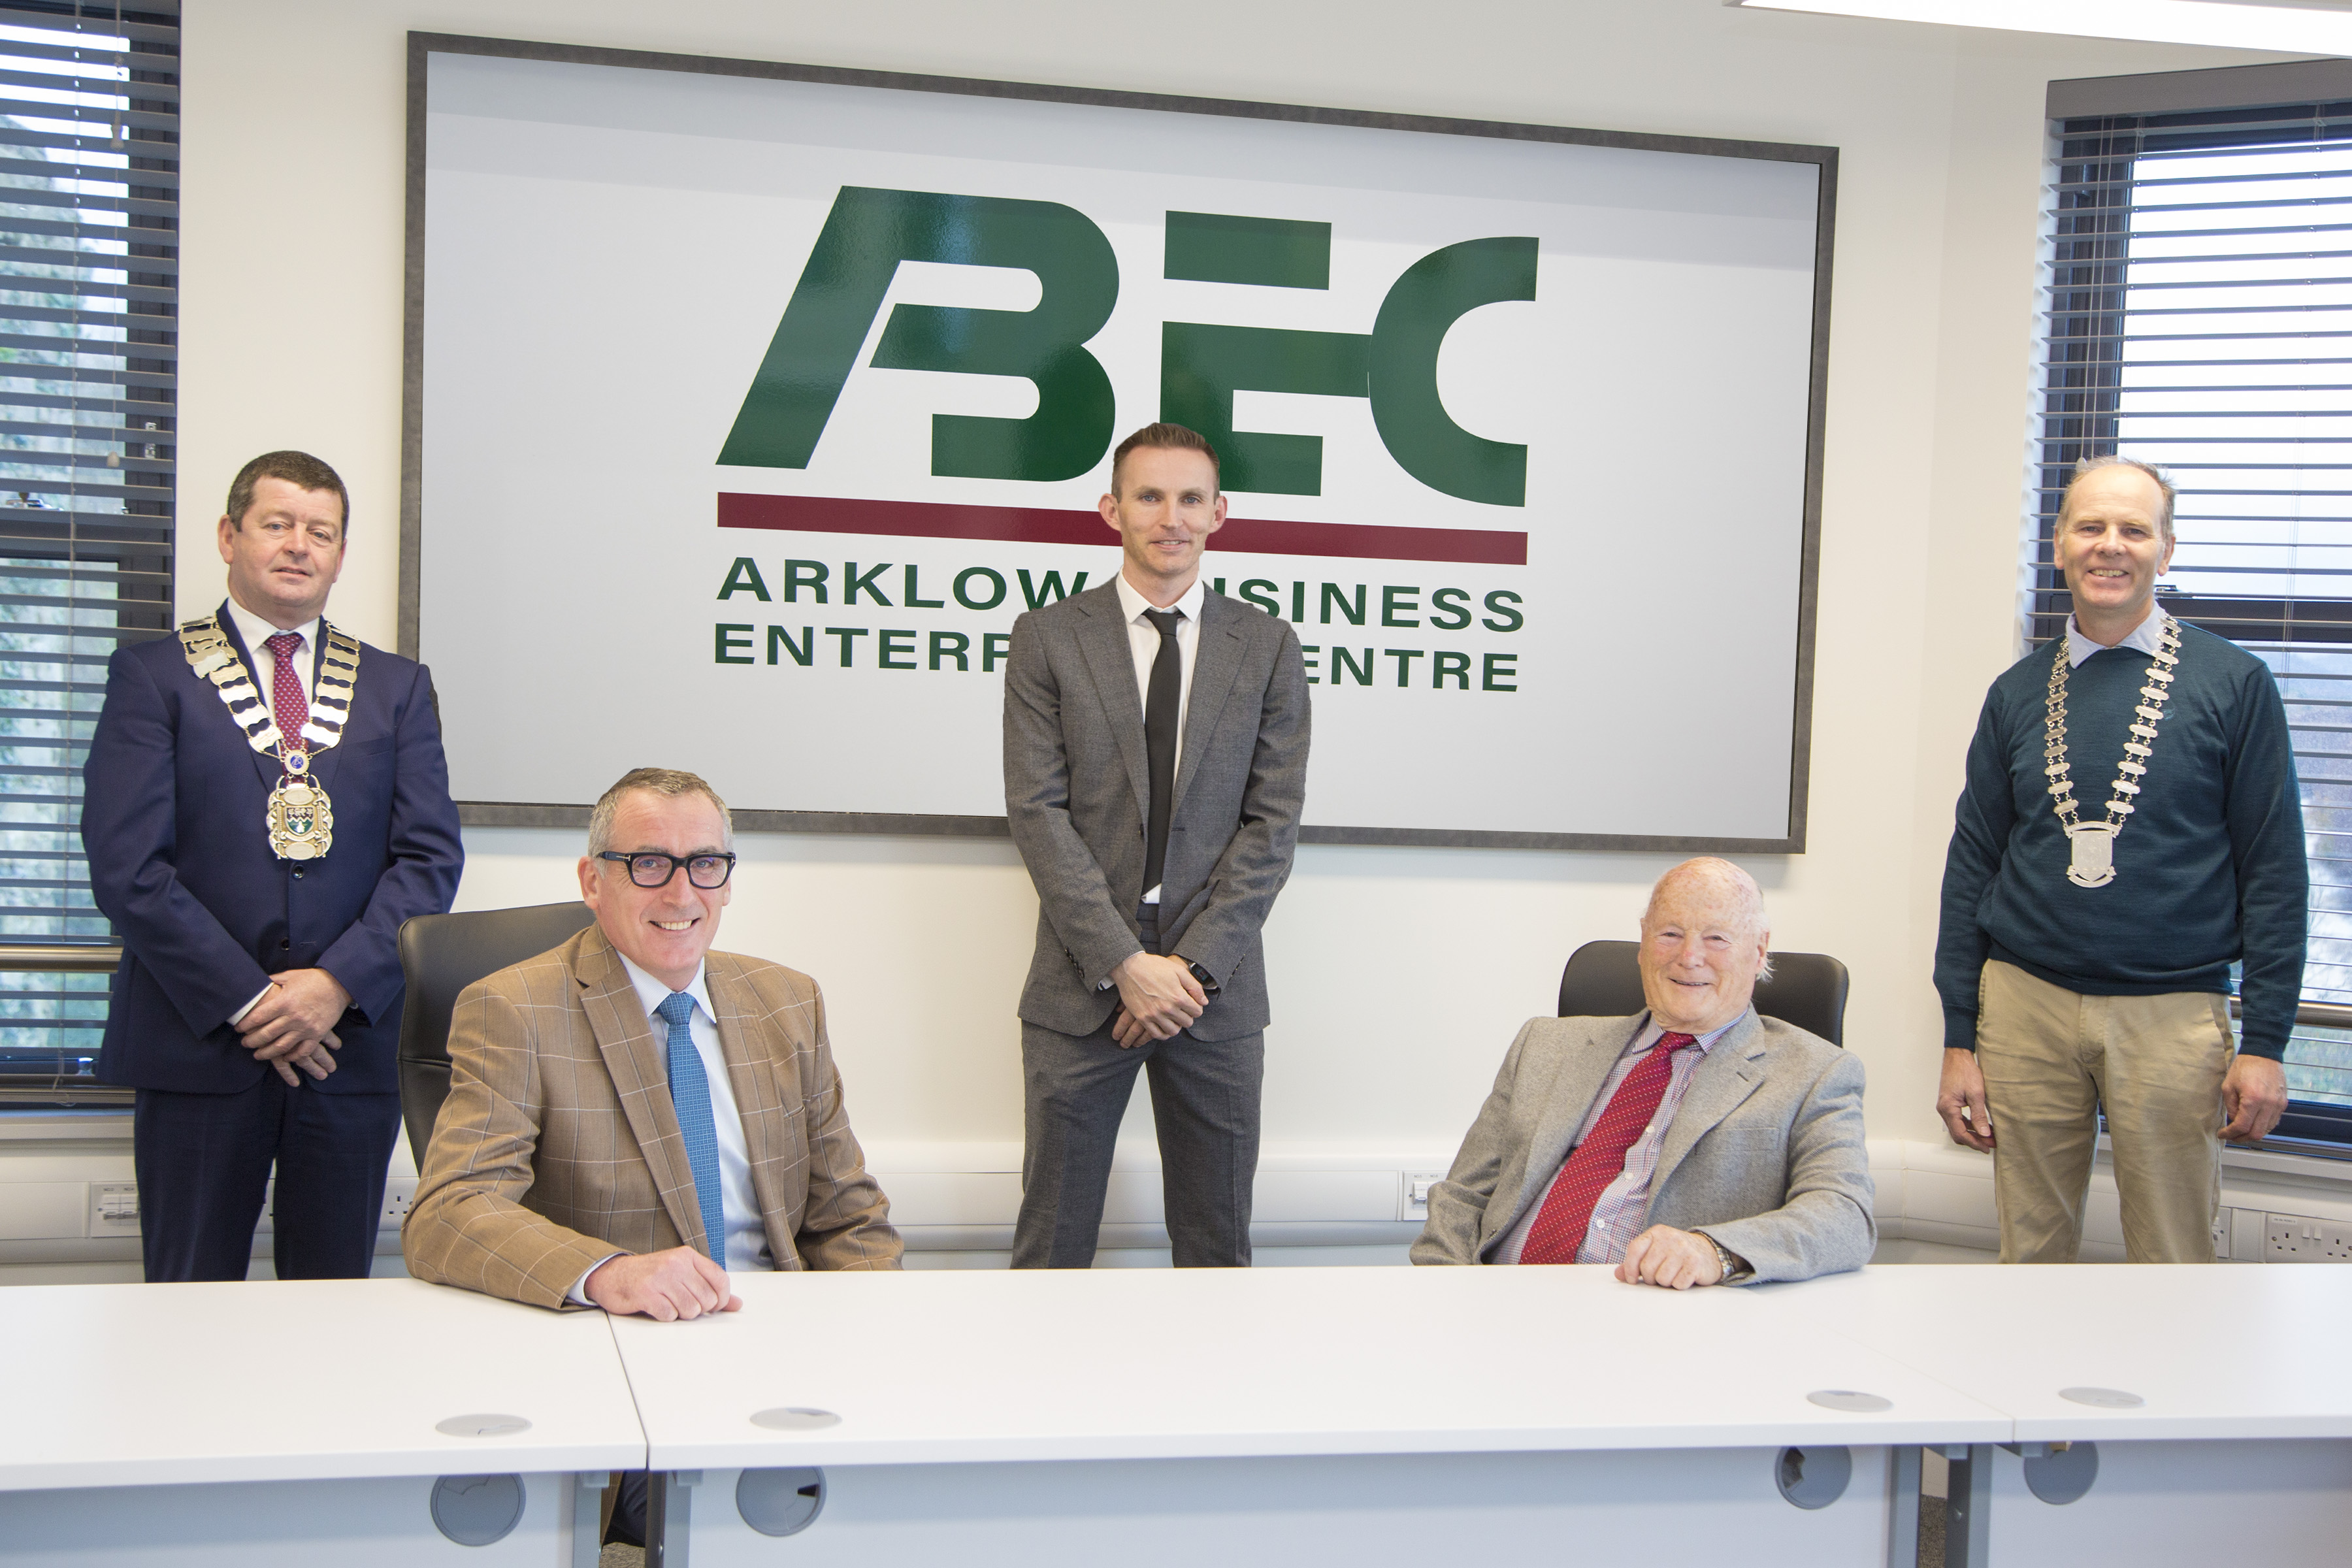 ARKLOW COURTHOUSE – BACK IN BUSINESS